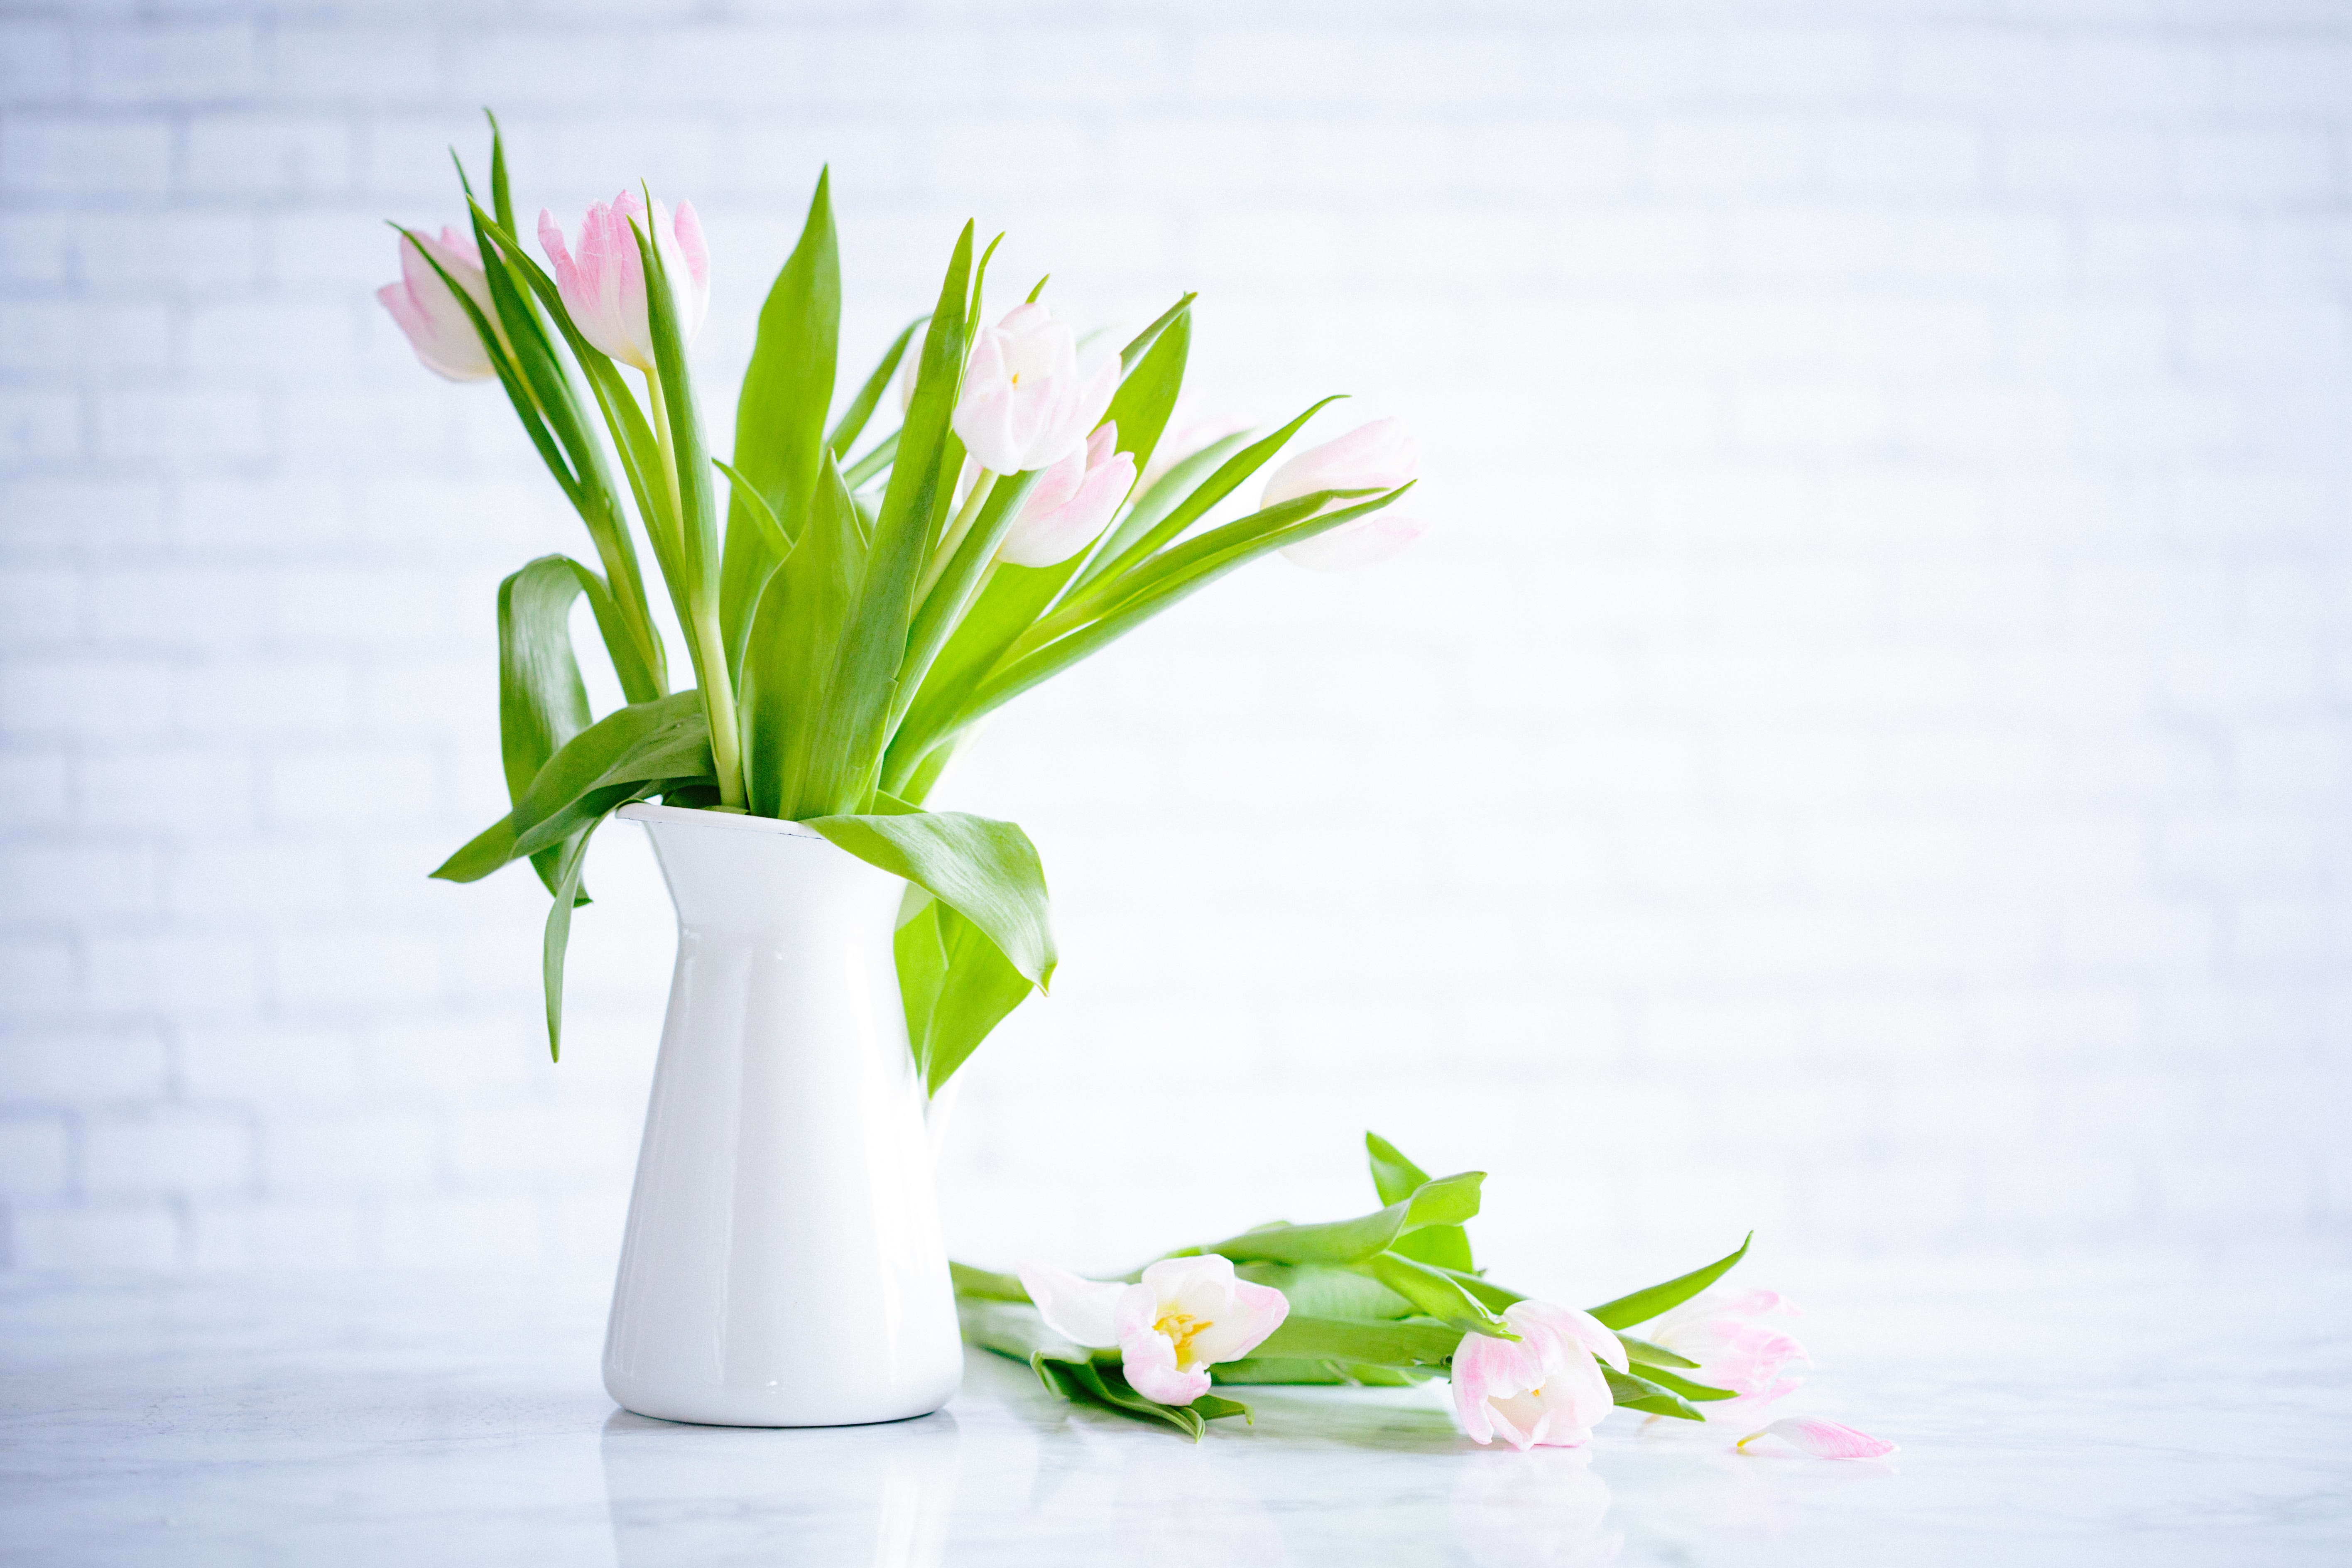 White vase with pink and white tulips and green stems in Spring, Salt Lake City